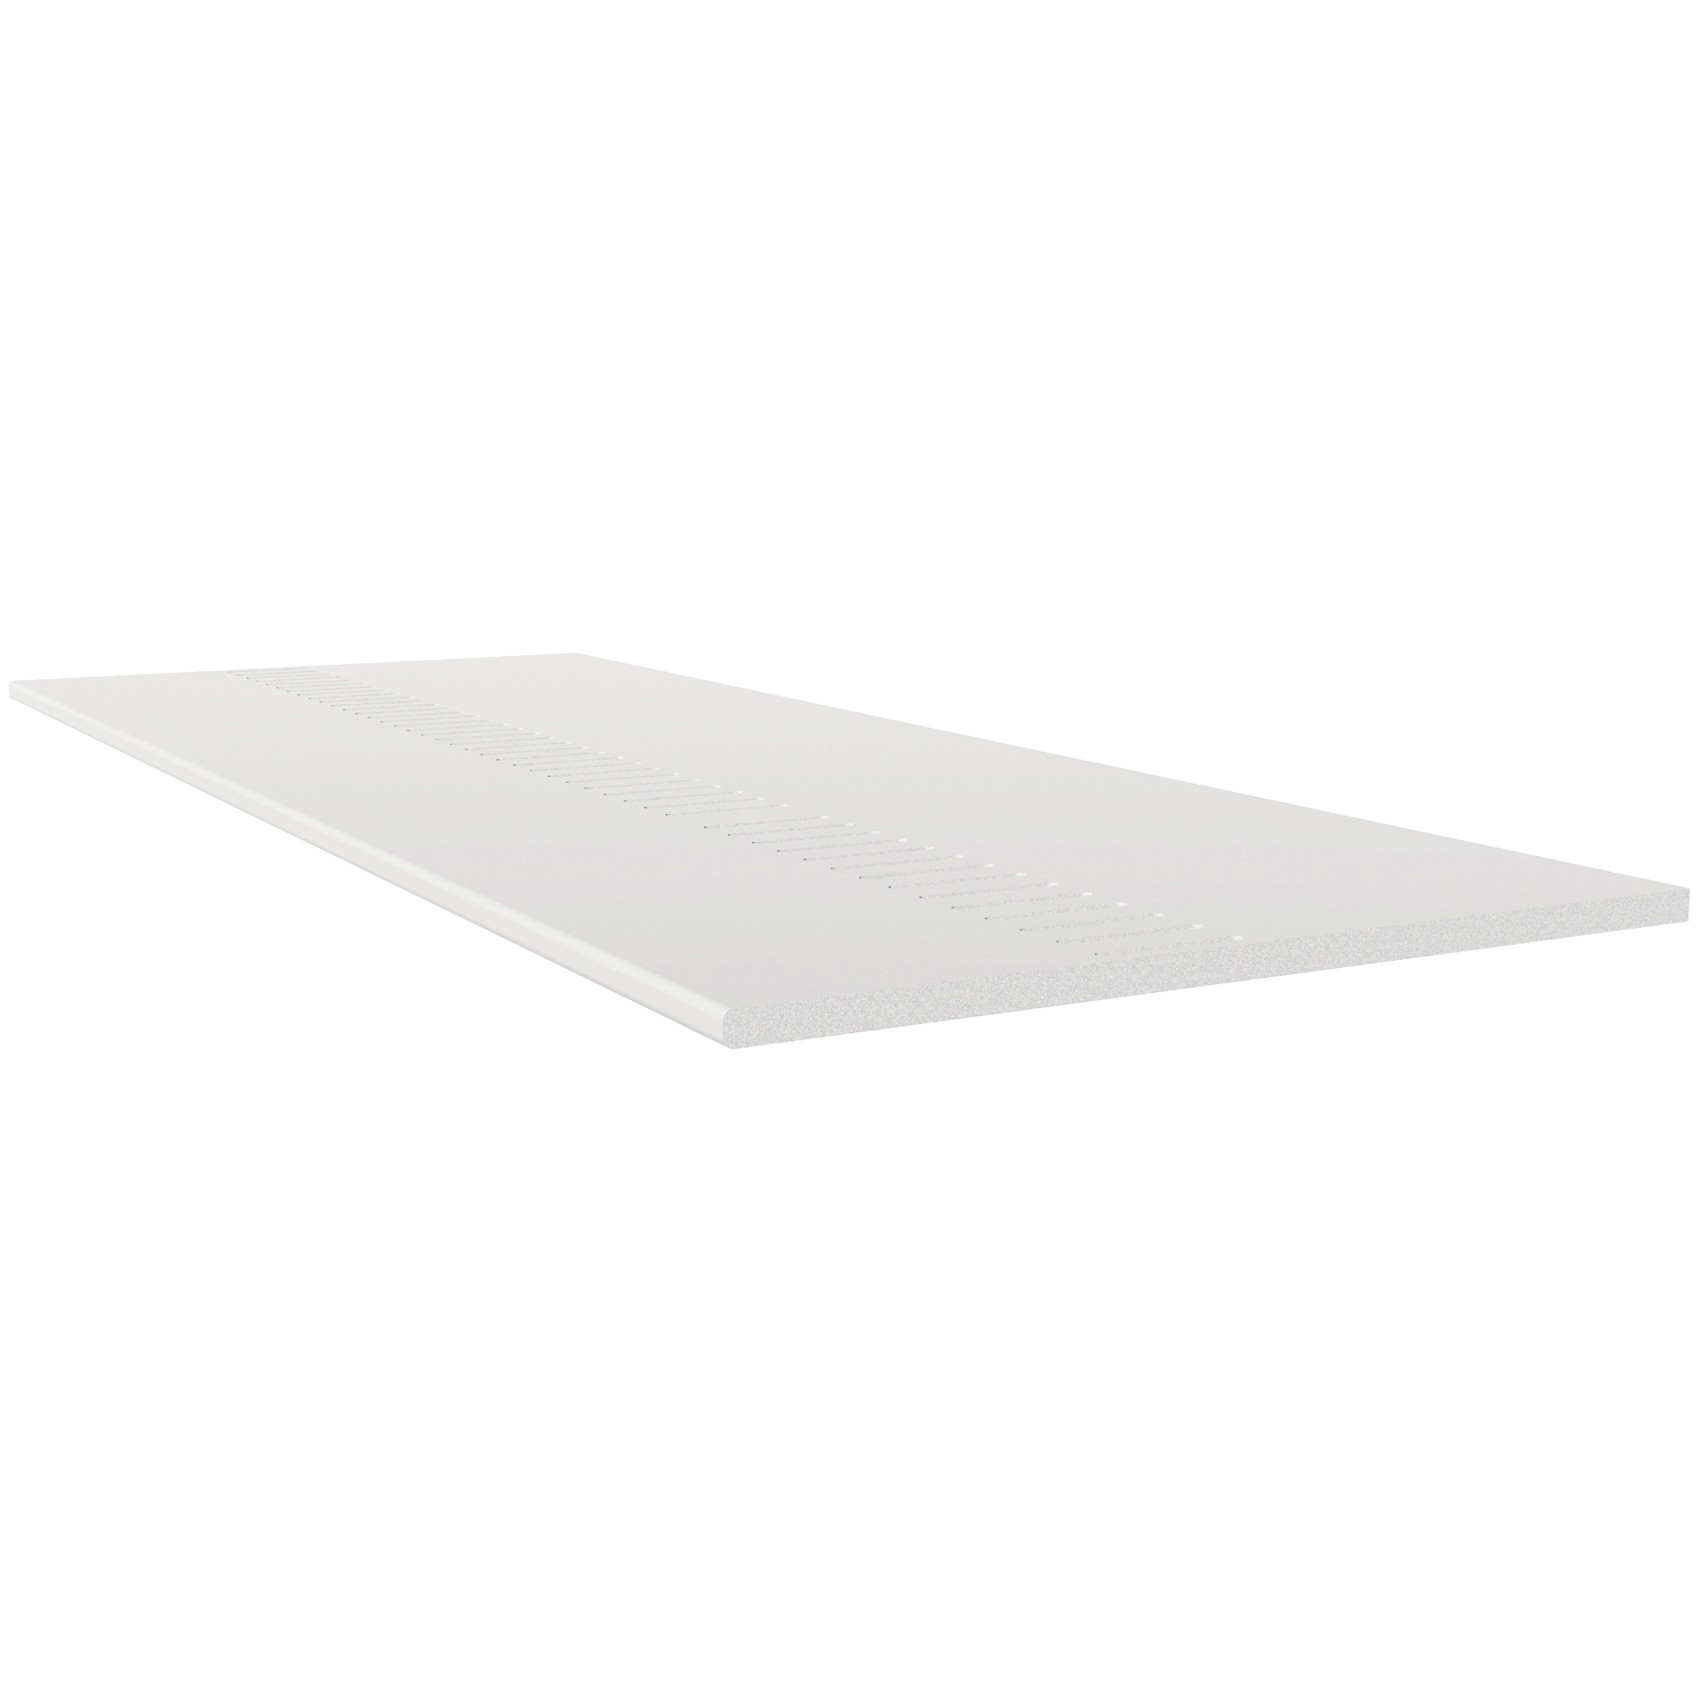 Freefoam Pre Vented 10mm Solid Soffit Board - White, 250mm, 5 metre